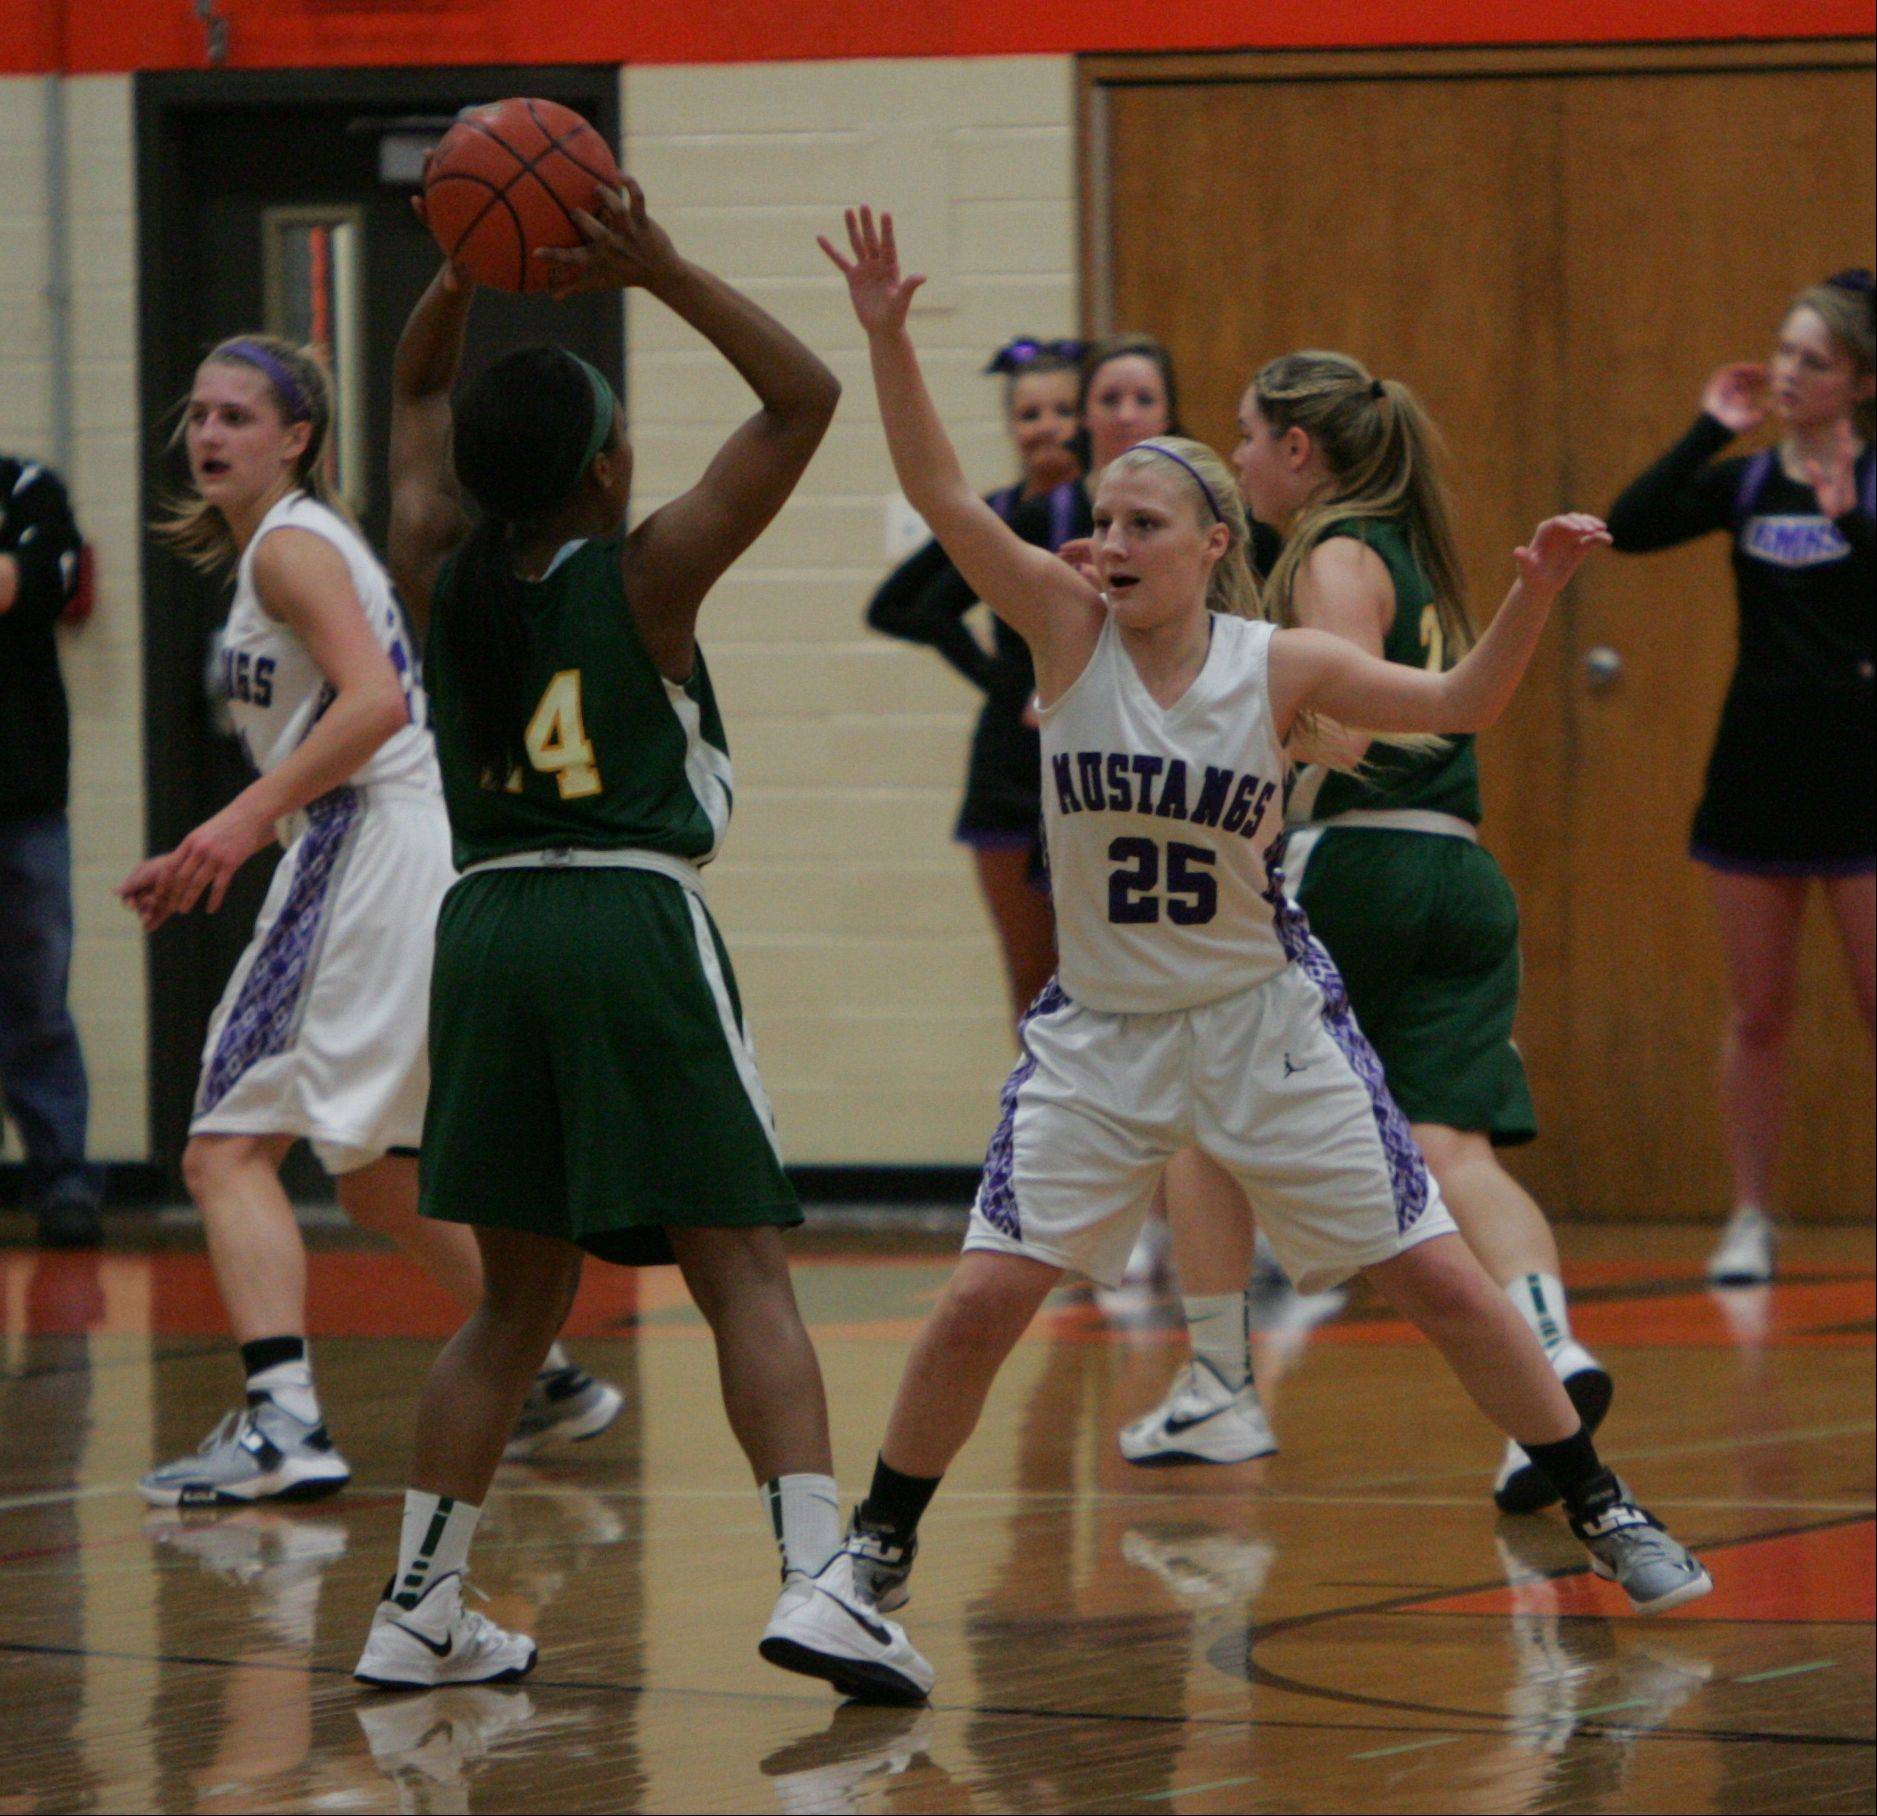 The girls basketball game between Rolling Meadows and Stevenson in the Class 4A sectional semifinals at Libertyville High School Monday.